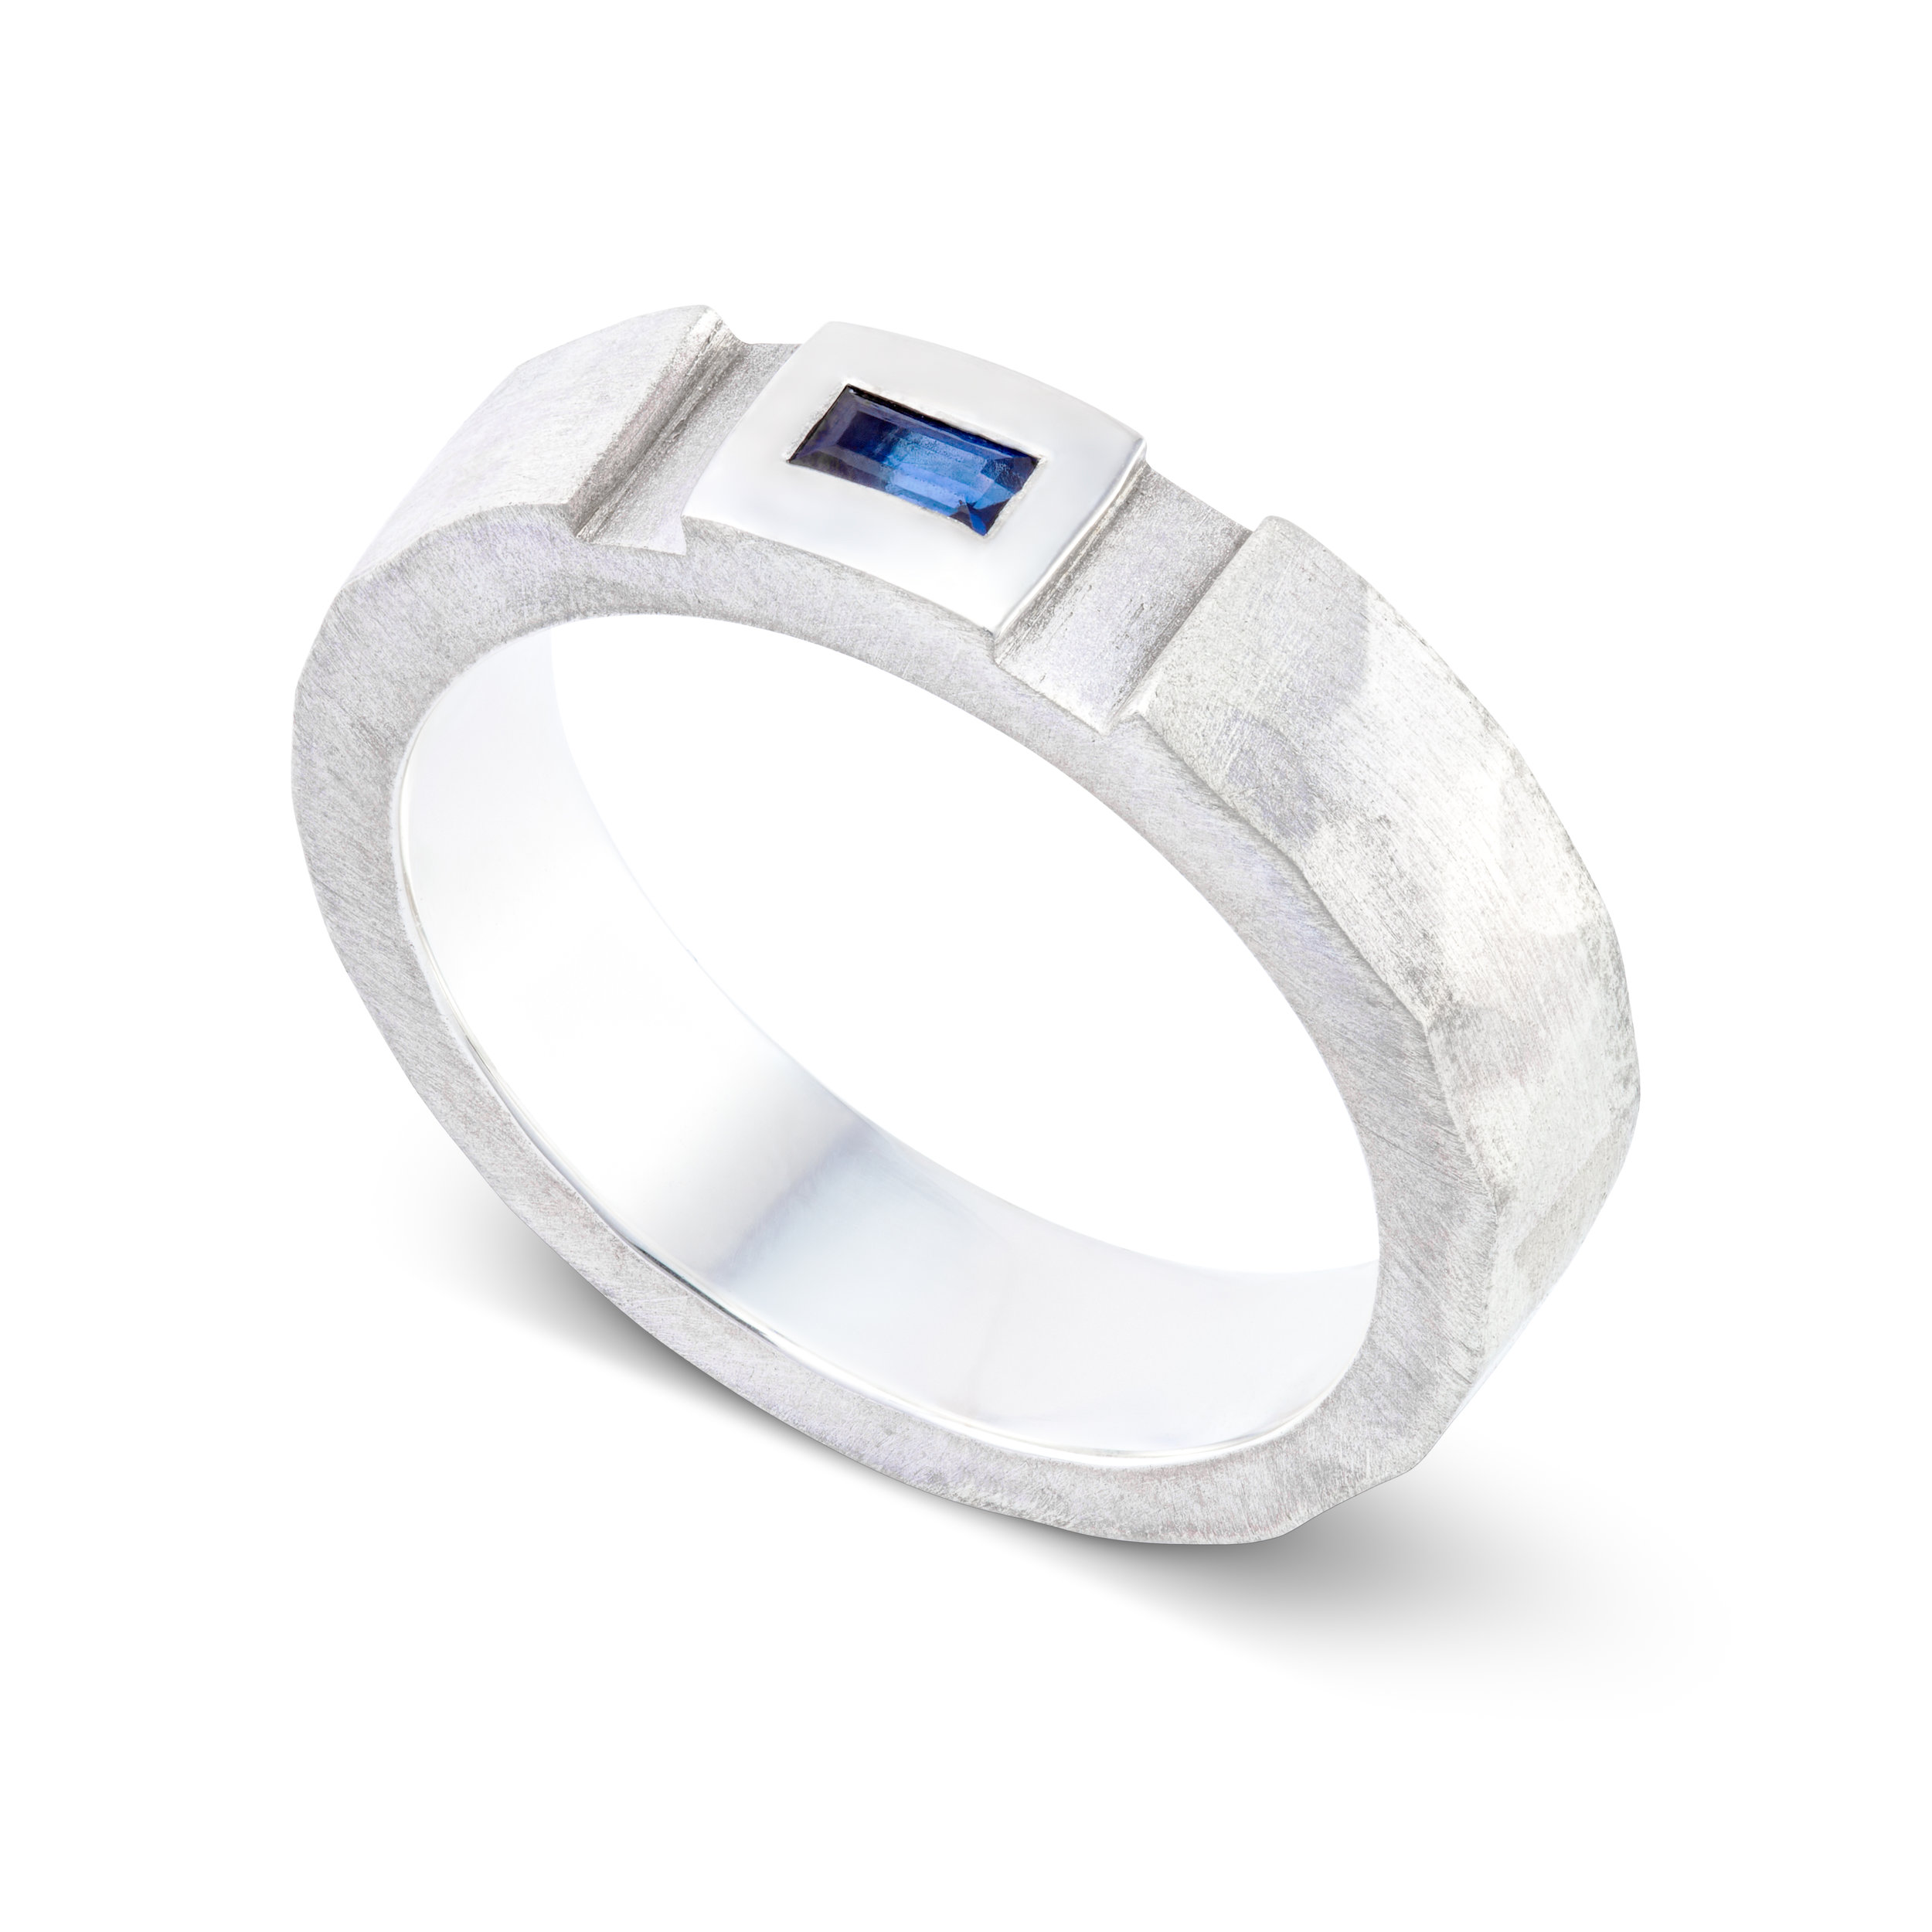 Silver dress ring set with one baguette sapphire - £190